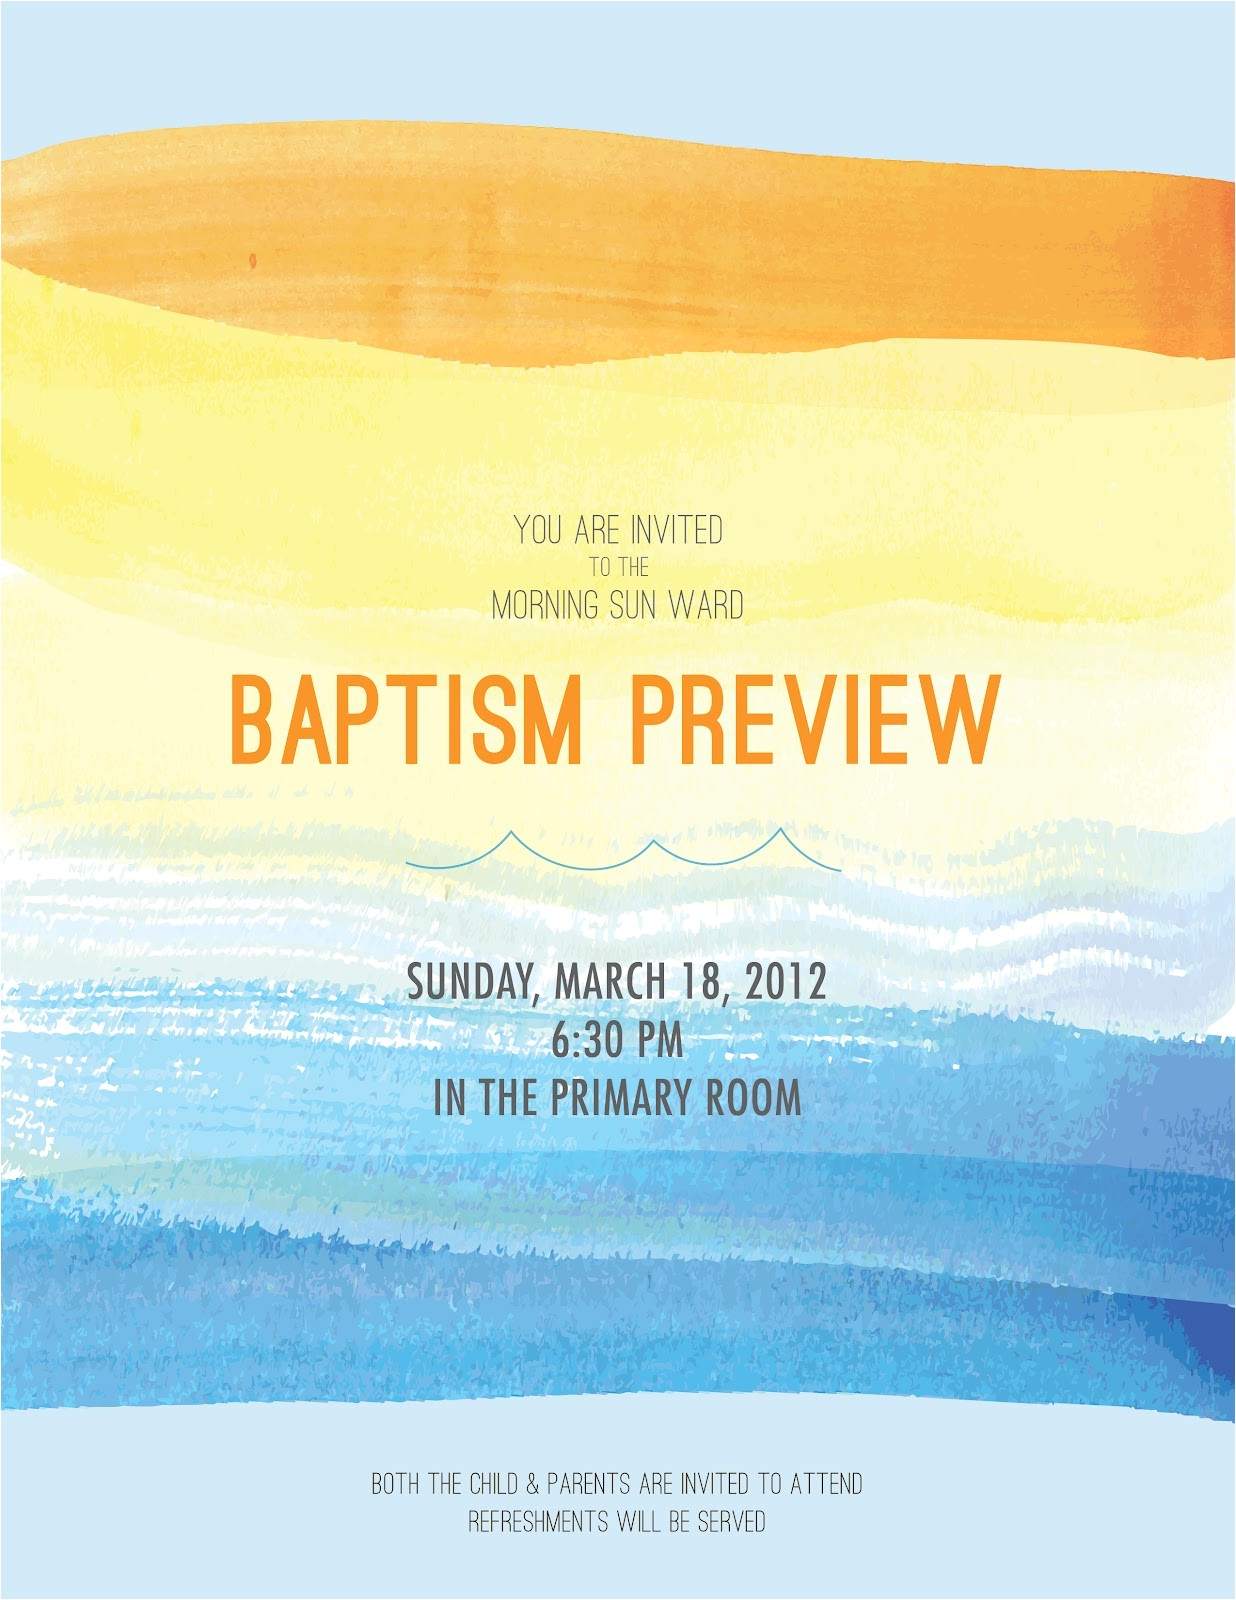 baptism preview invitation